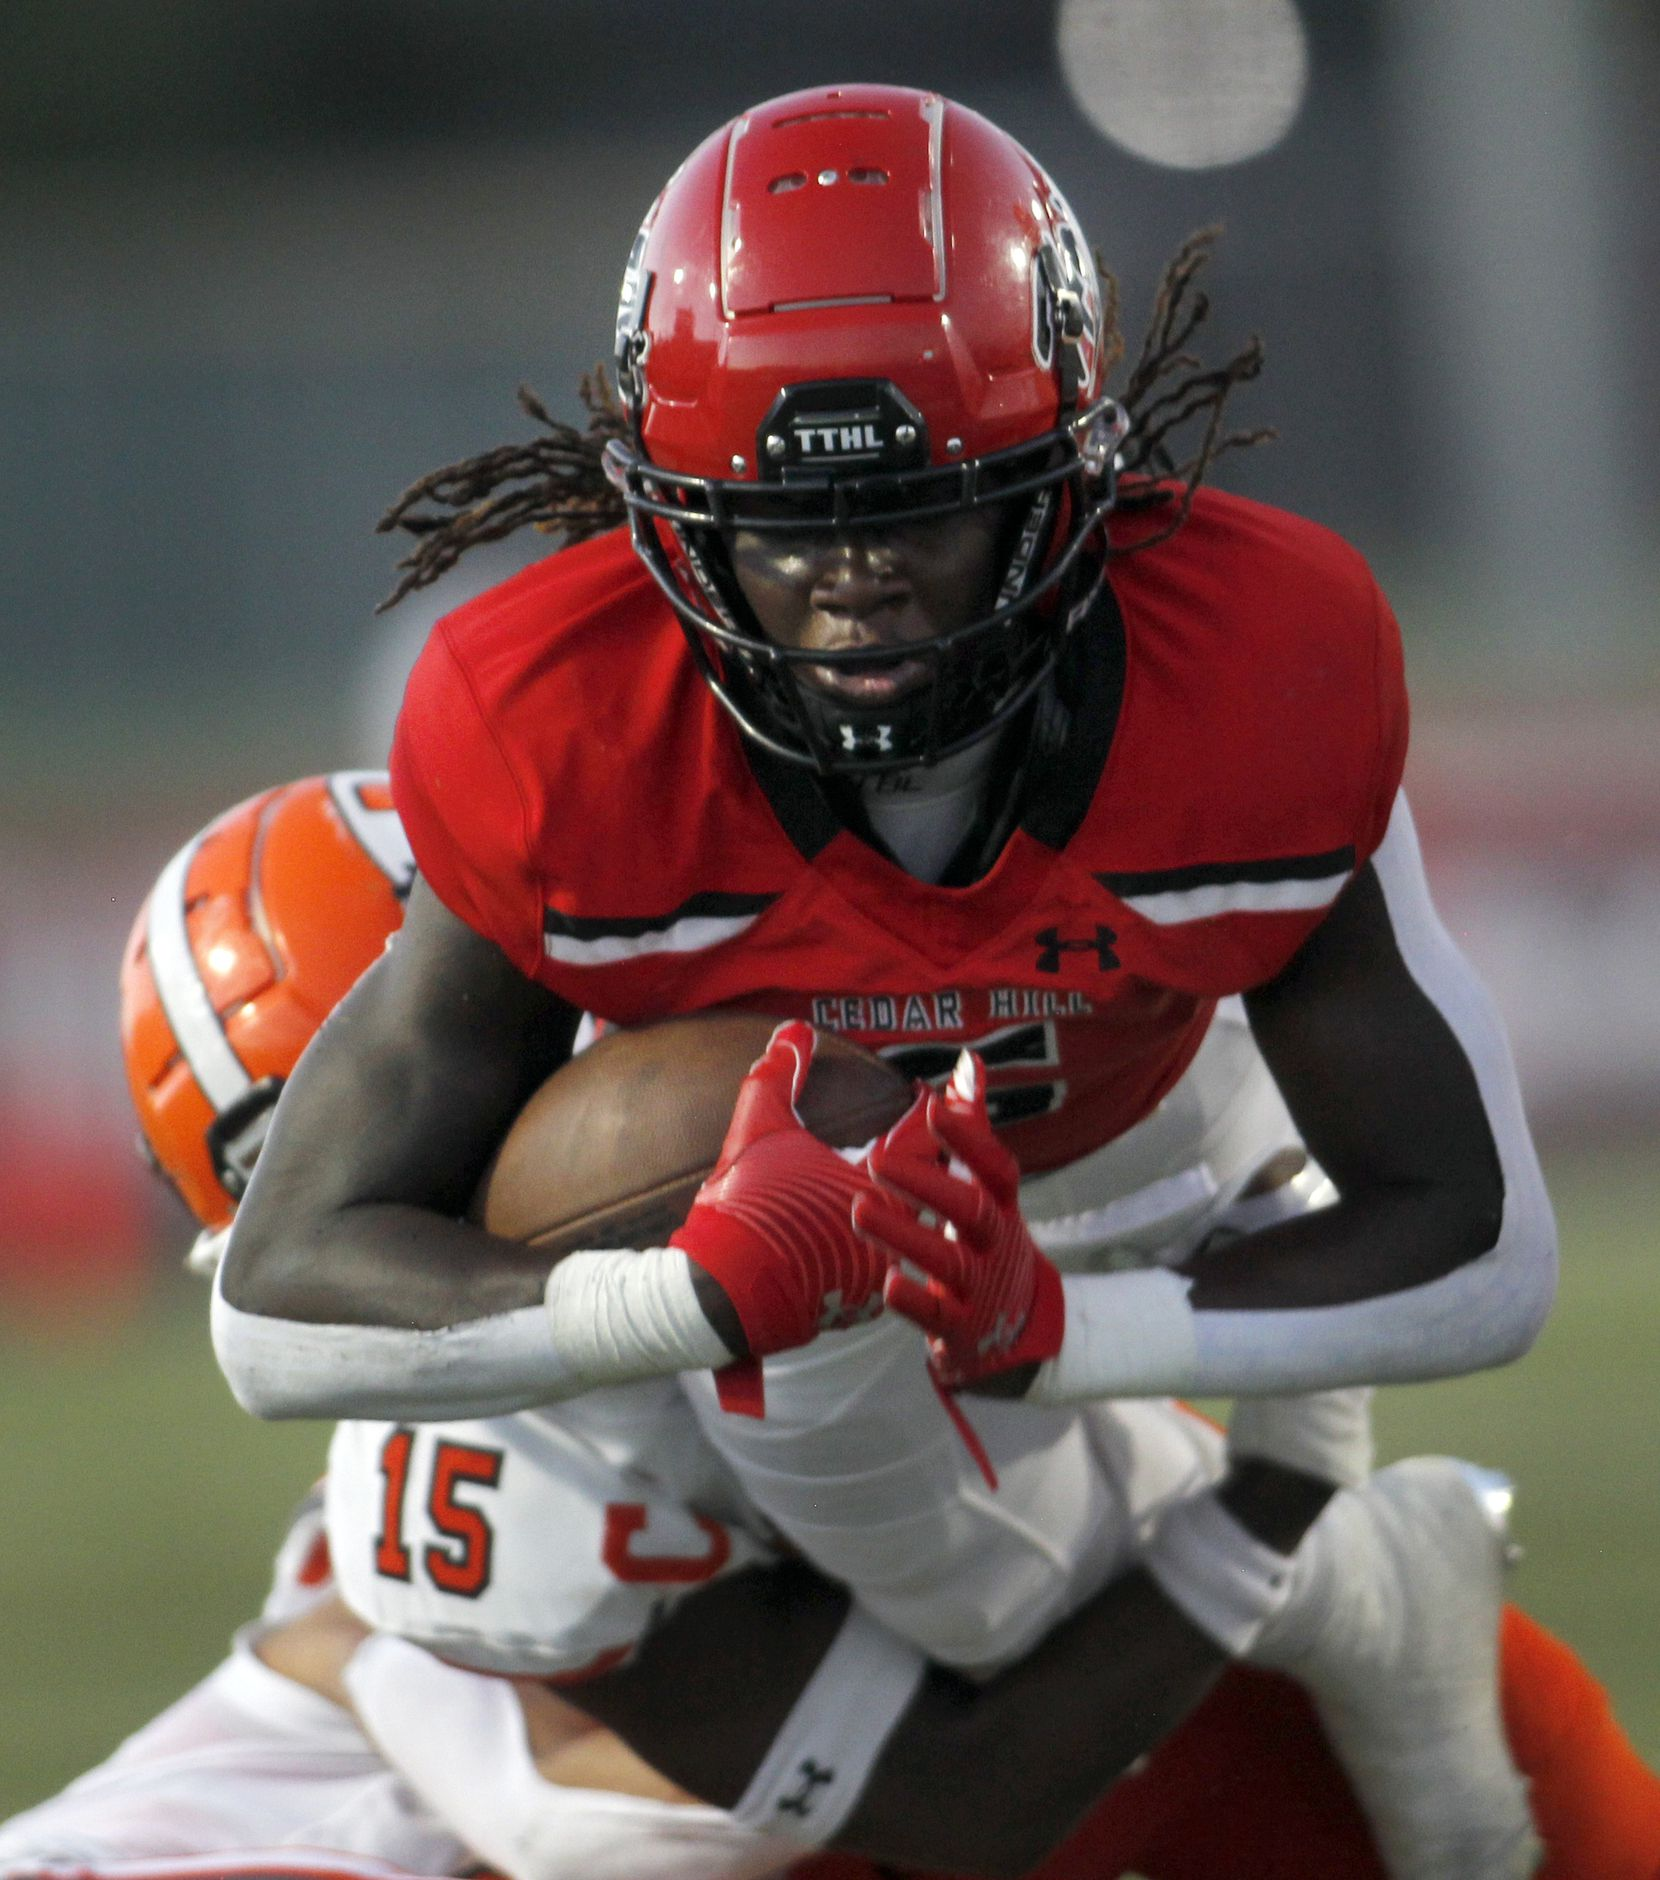 Cedar Hill running back Robert Richardson (6) dives near the goal line as he is stopped defensively by Rockwall linebacker Dayreck Dean (15) during a first half rush. Cedar Hill and Rockwall played their season opening football game at Longhorn Stadium in Cedar Hill on August 27, 2021. (Steve Hamm/ Special Contributor)